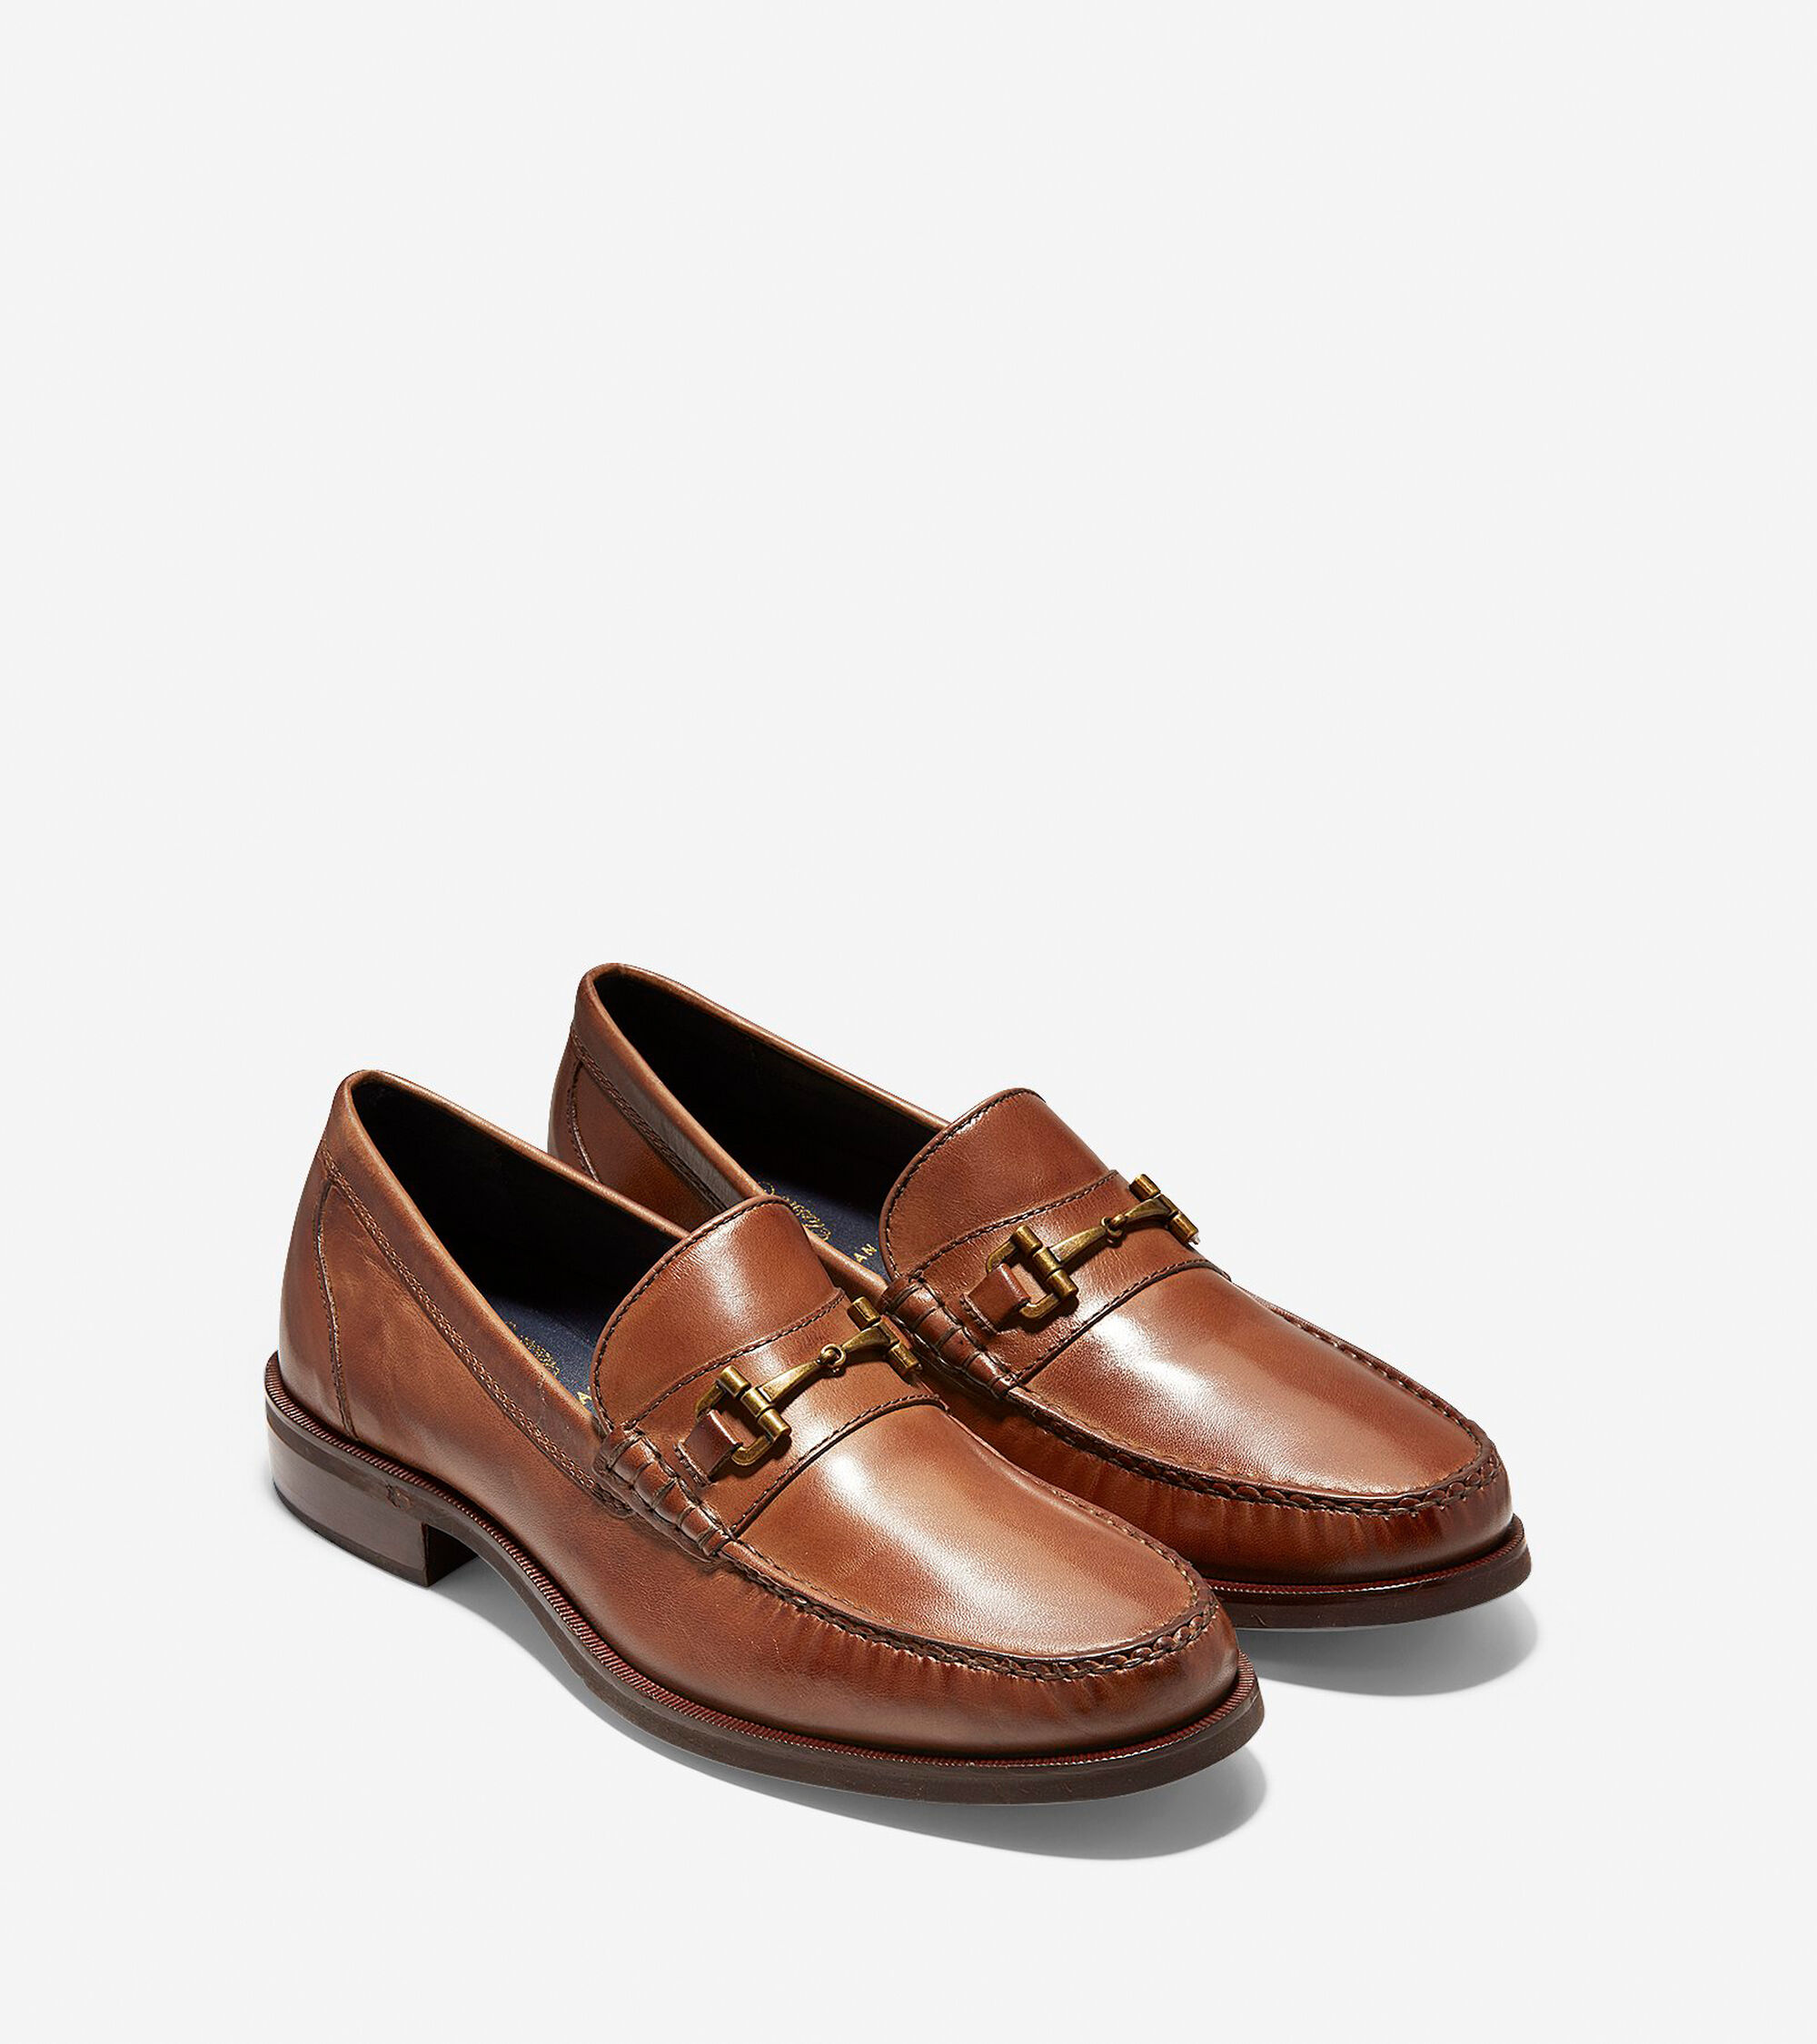 818b7ee31a9 Men s Pinch Sanford Bit Loafers in British Tan